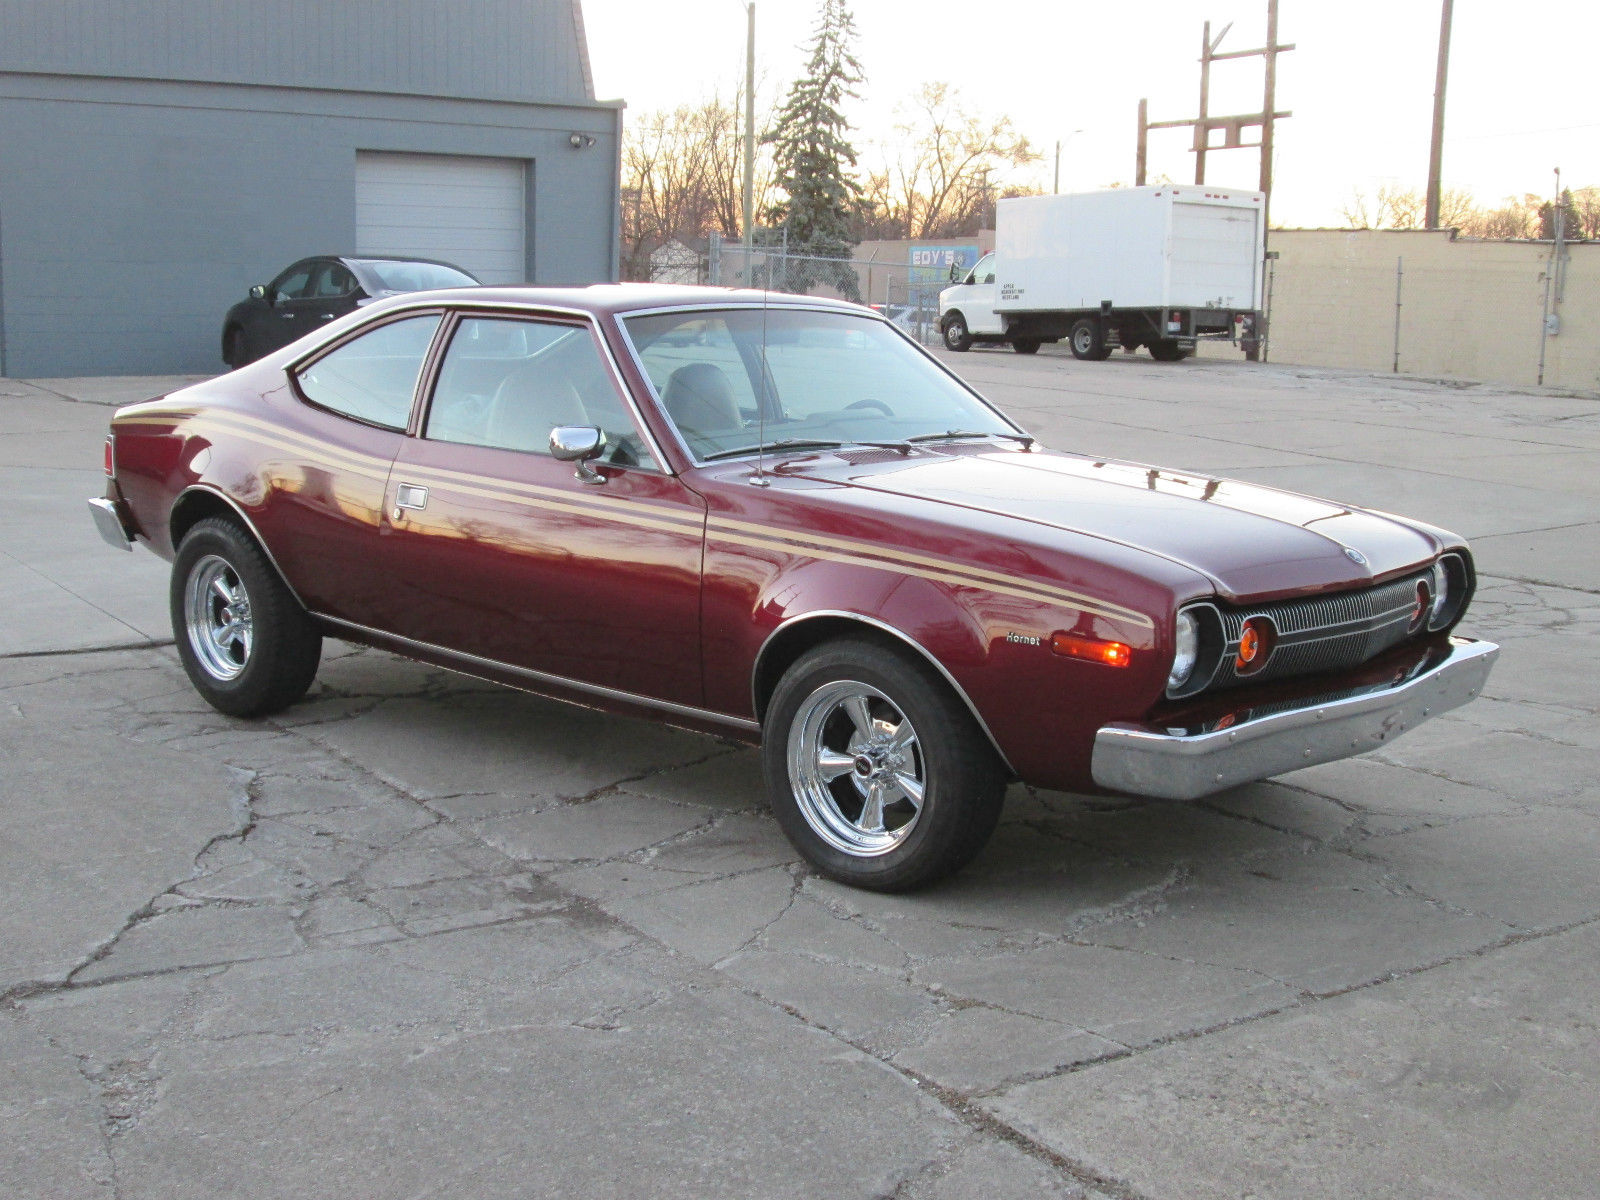 """Not Every AMC Product Was """"Quirky"""". Check Out This 1977 401-Powered Hornet X!"""